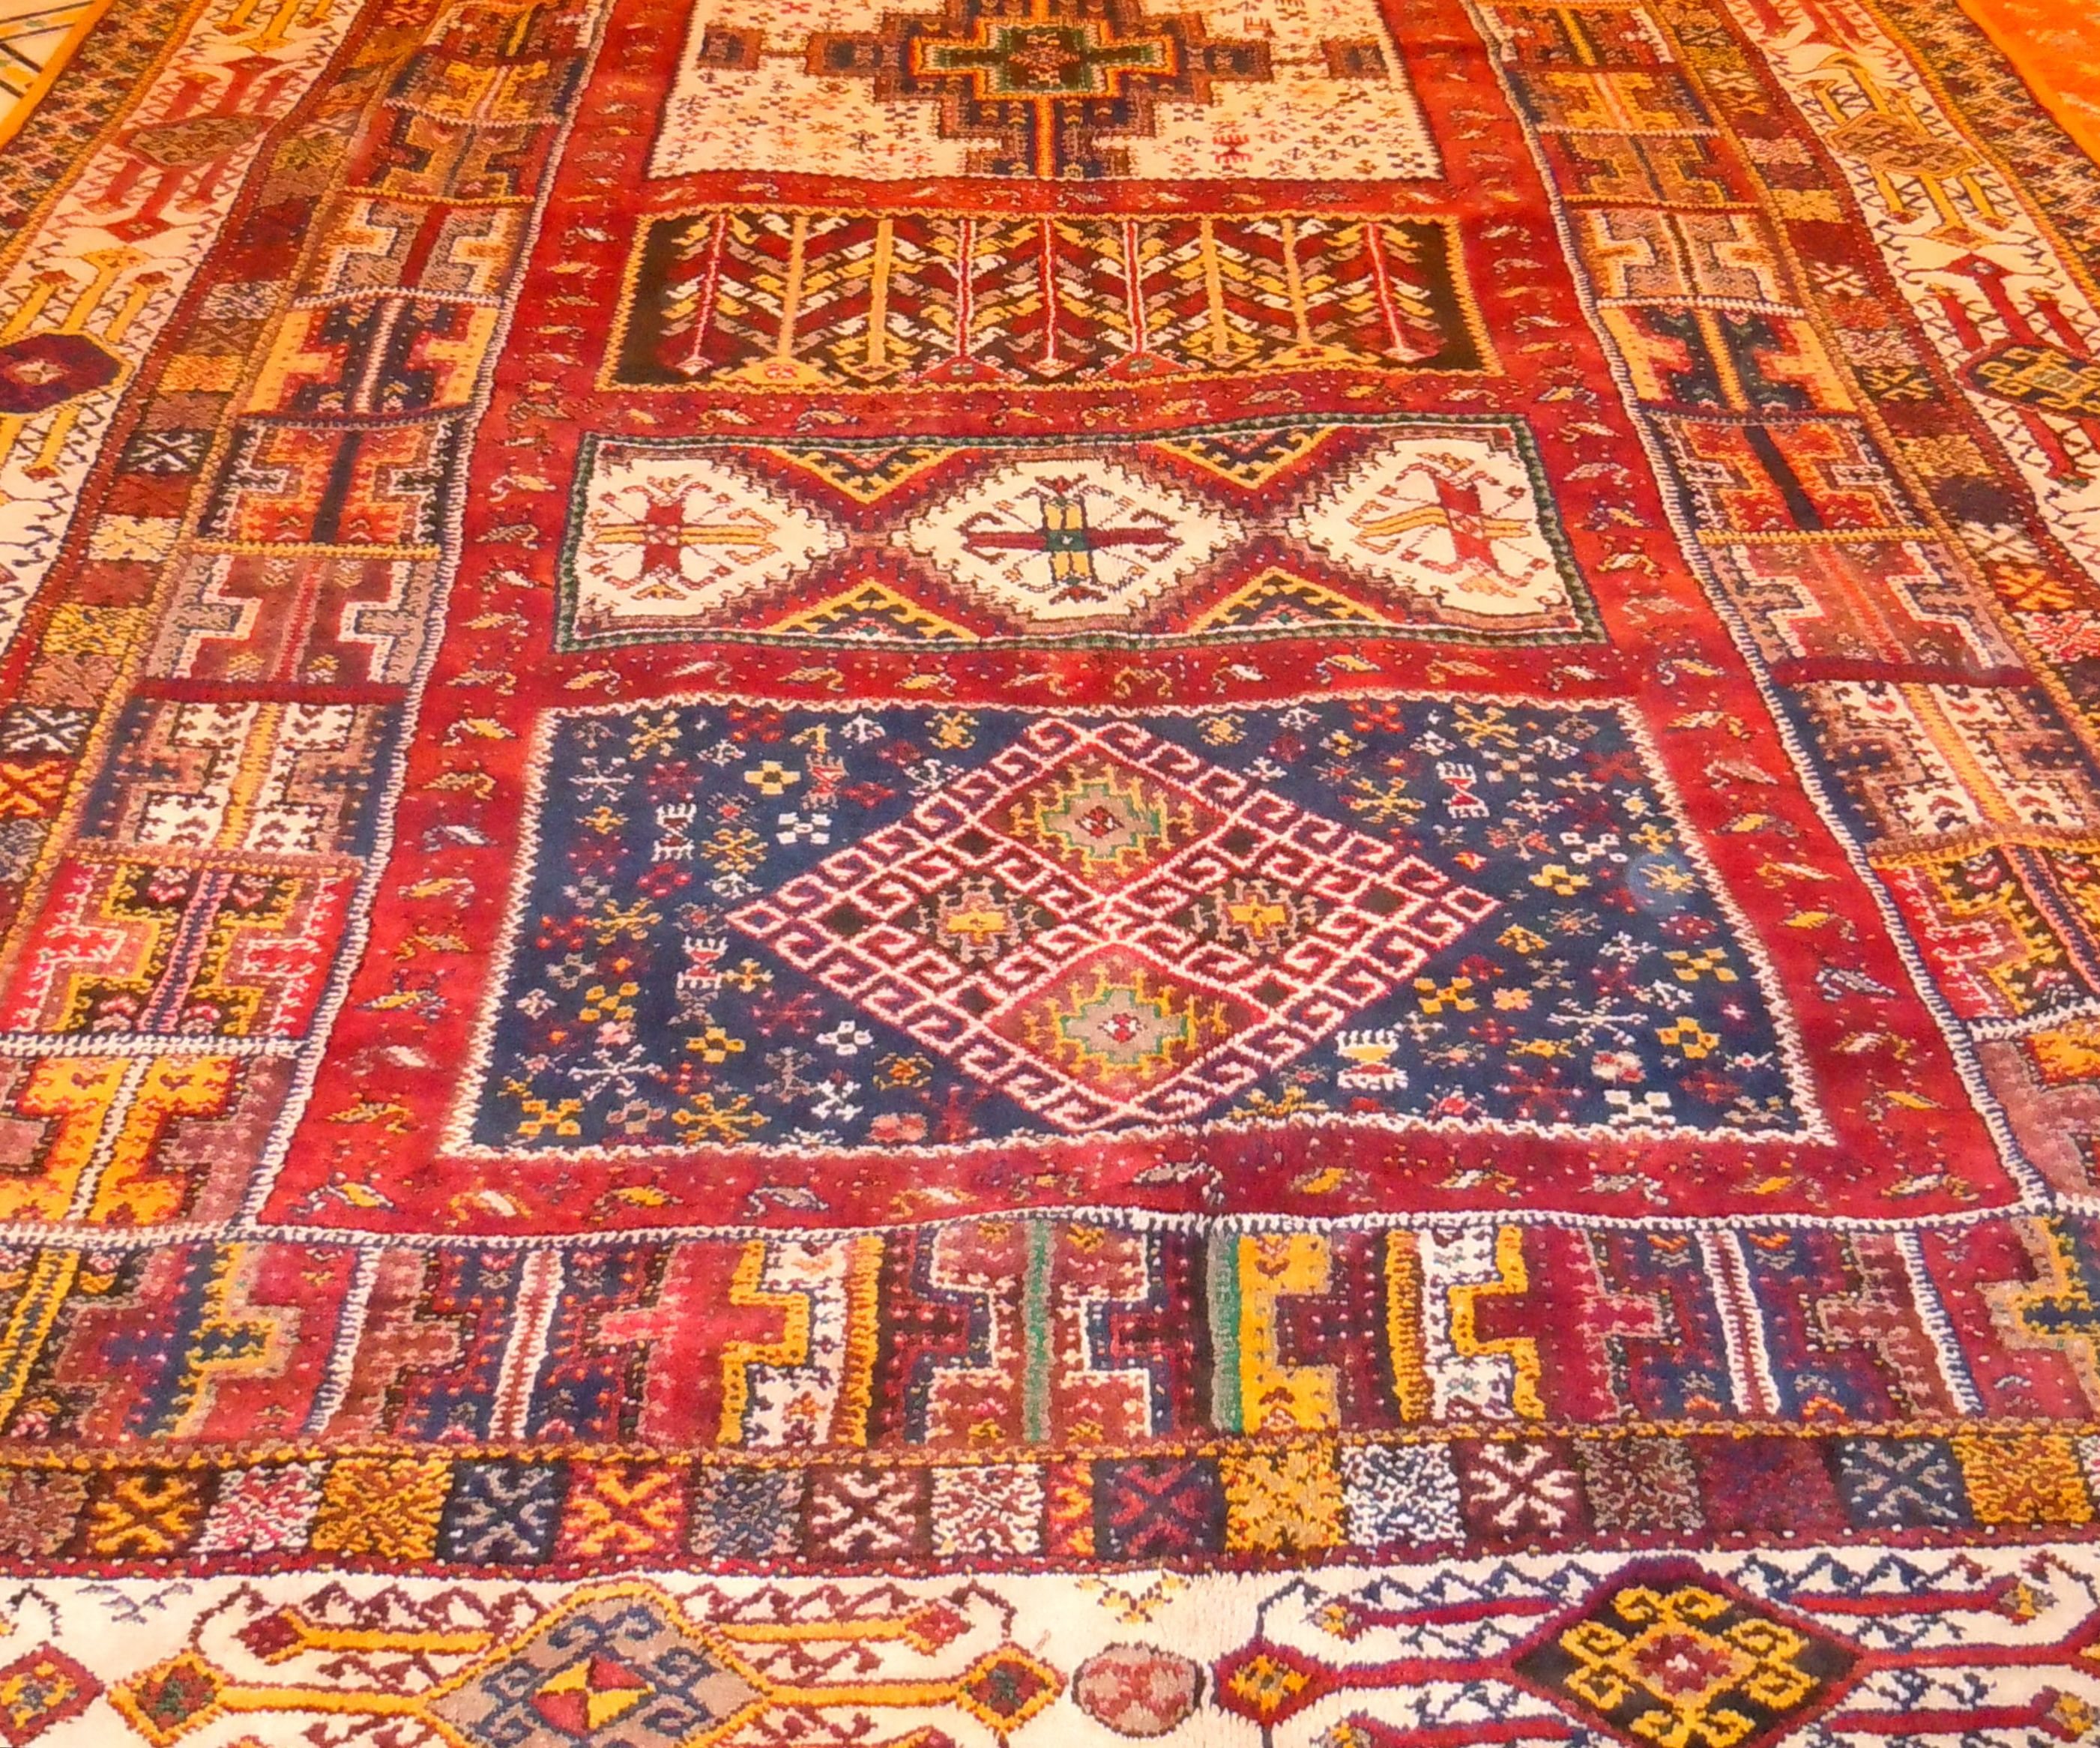 Antique Berber Moroccan rug Shifting Sand Pinterest